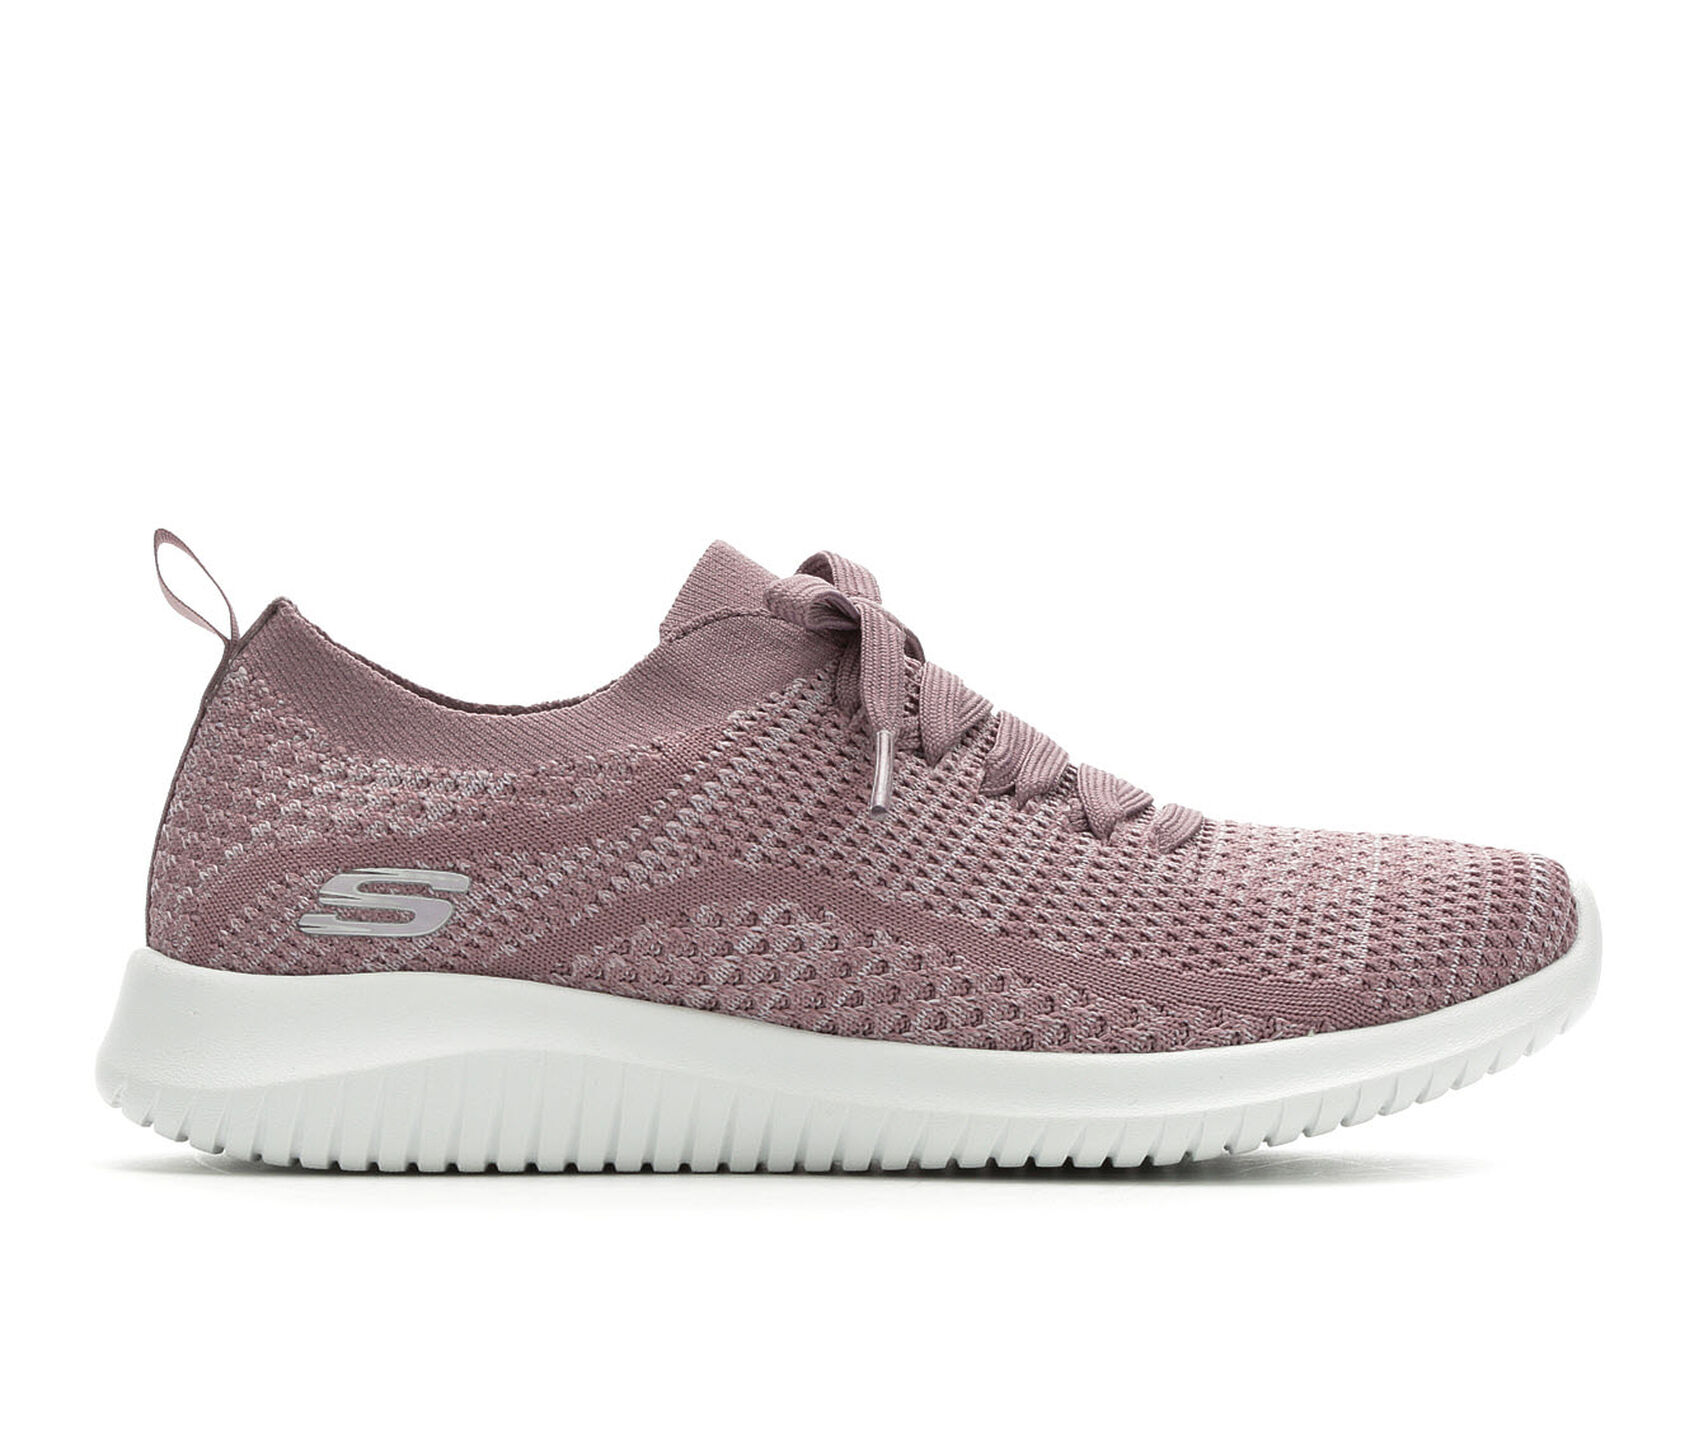 5ac957f42640 ... Skechers Statements 12841 Slip-On Sneakers. Previous